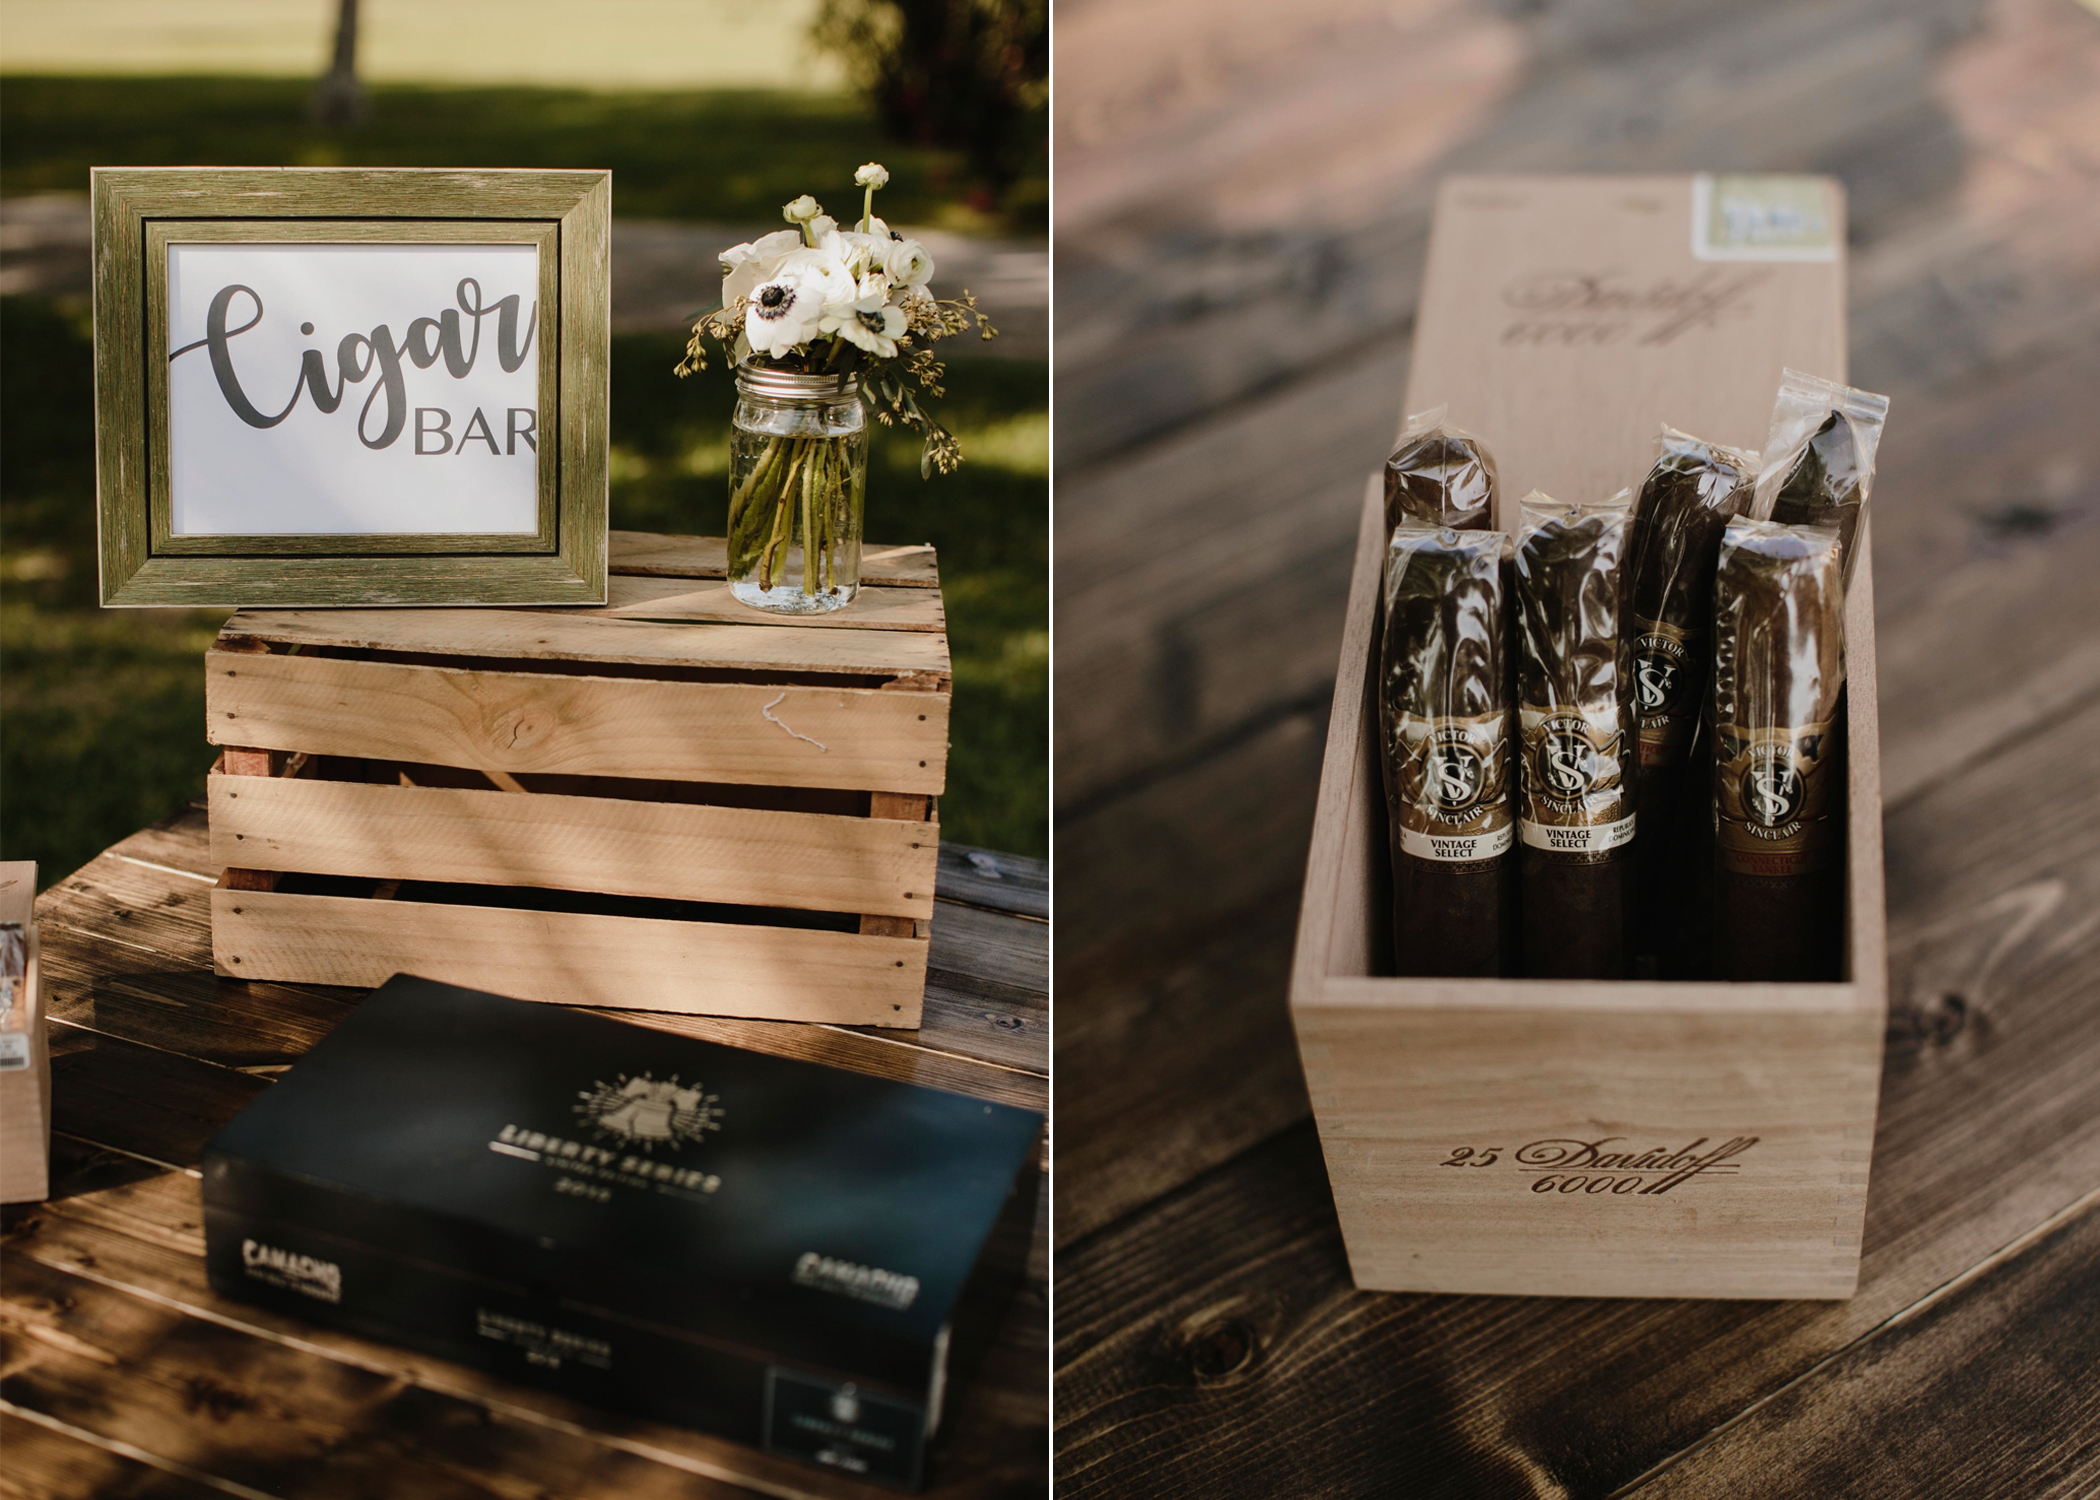 alfonso_flores_destination_wedding_photography_rancho_la_pergola_san_benito_texas_4 copia.jpg